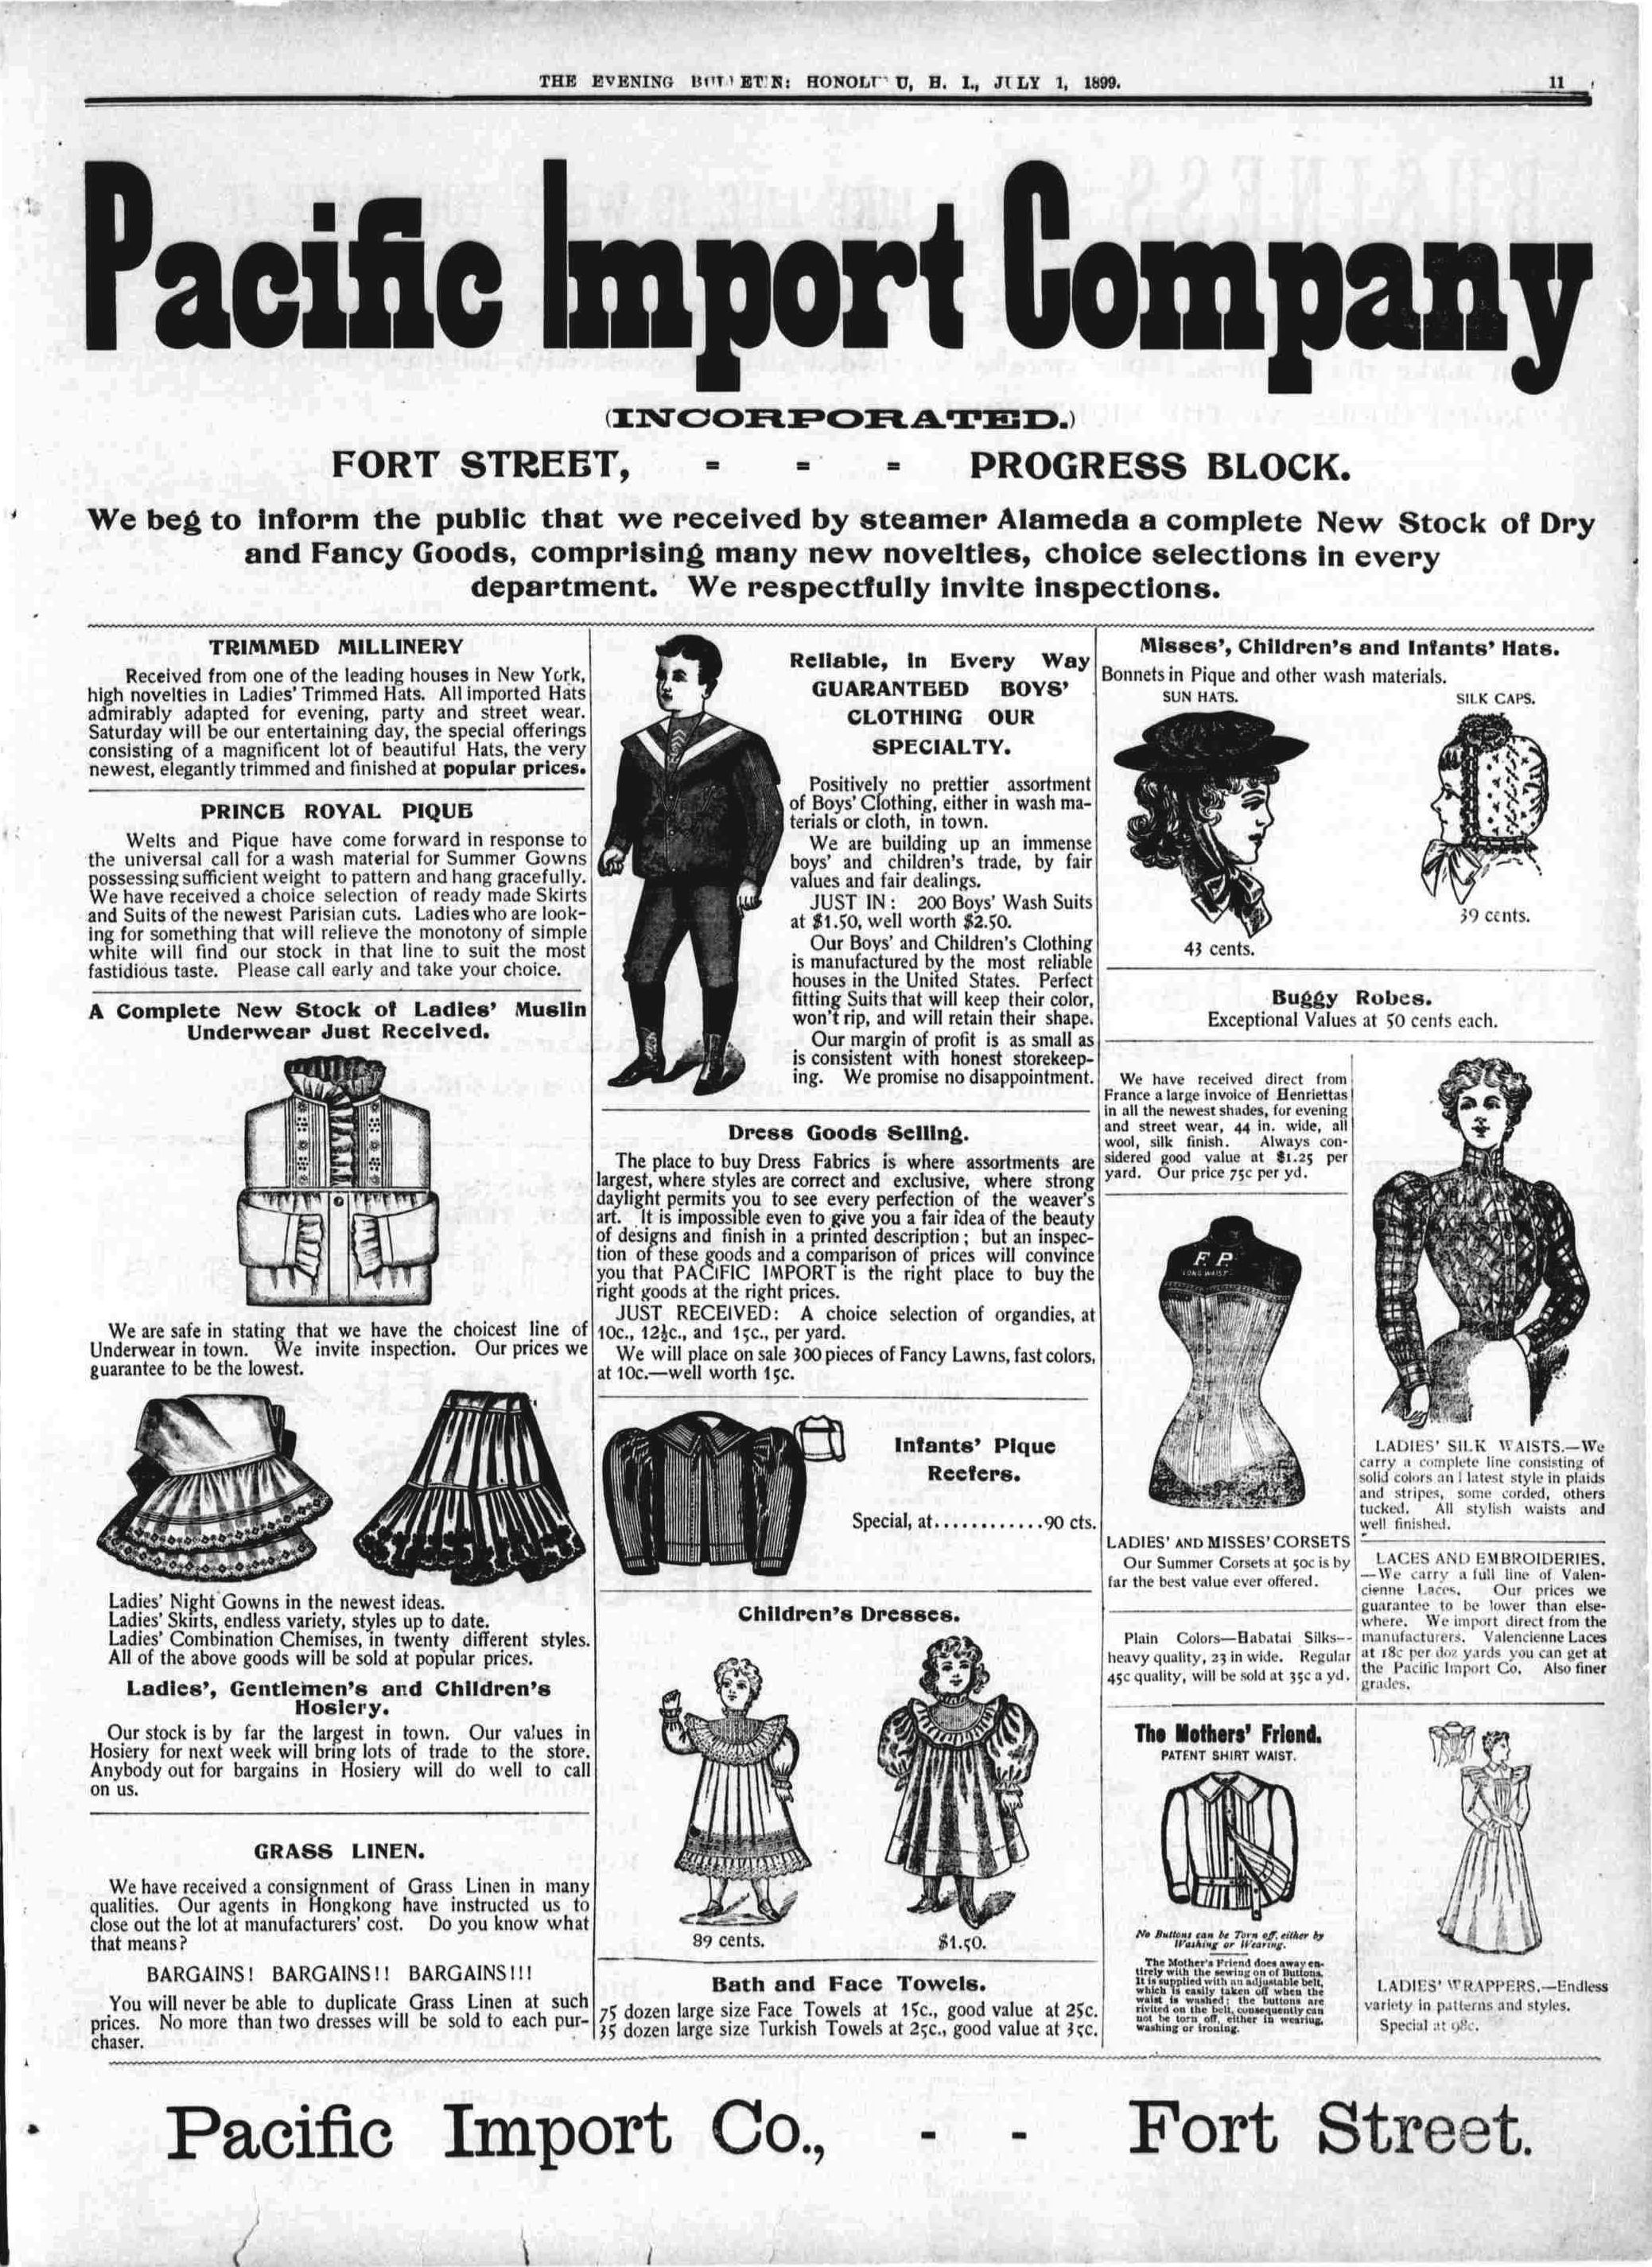 Fashion In Hawaii Newspaper Advertisements